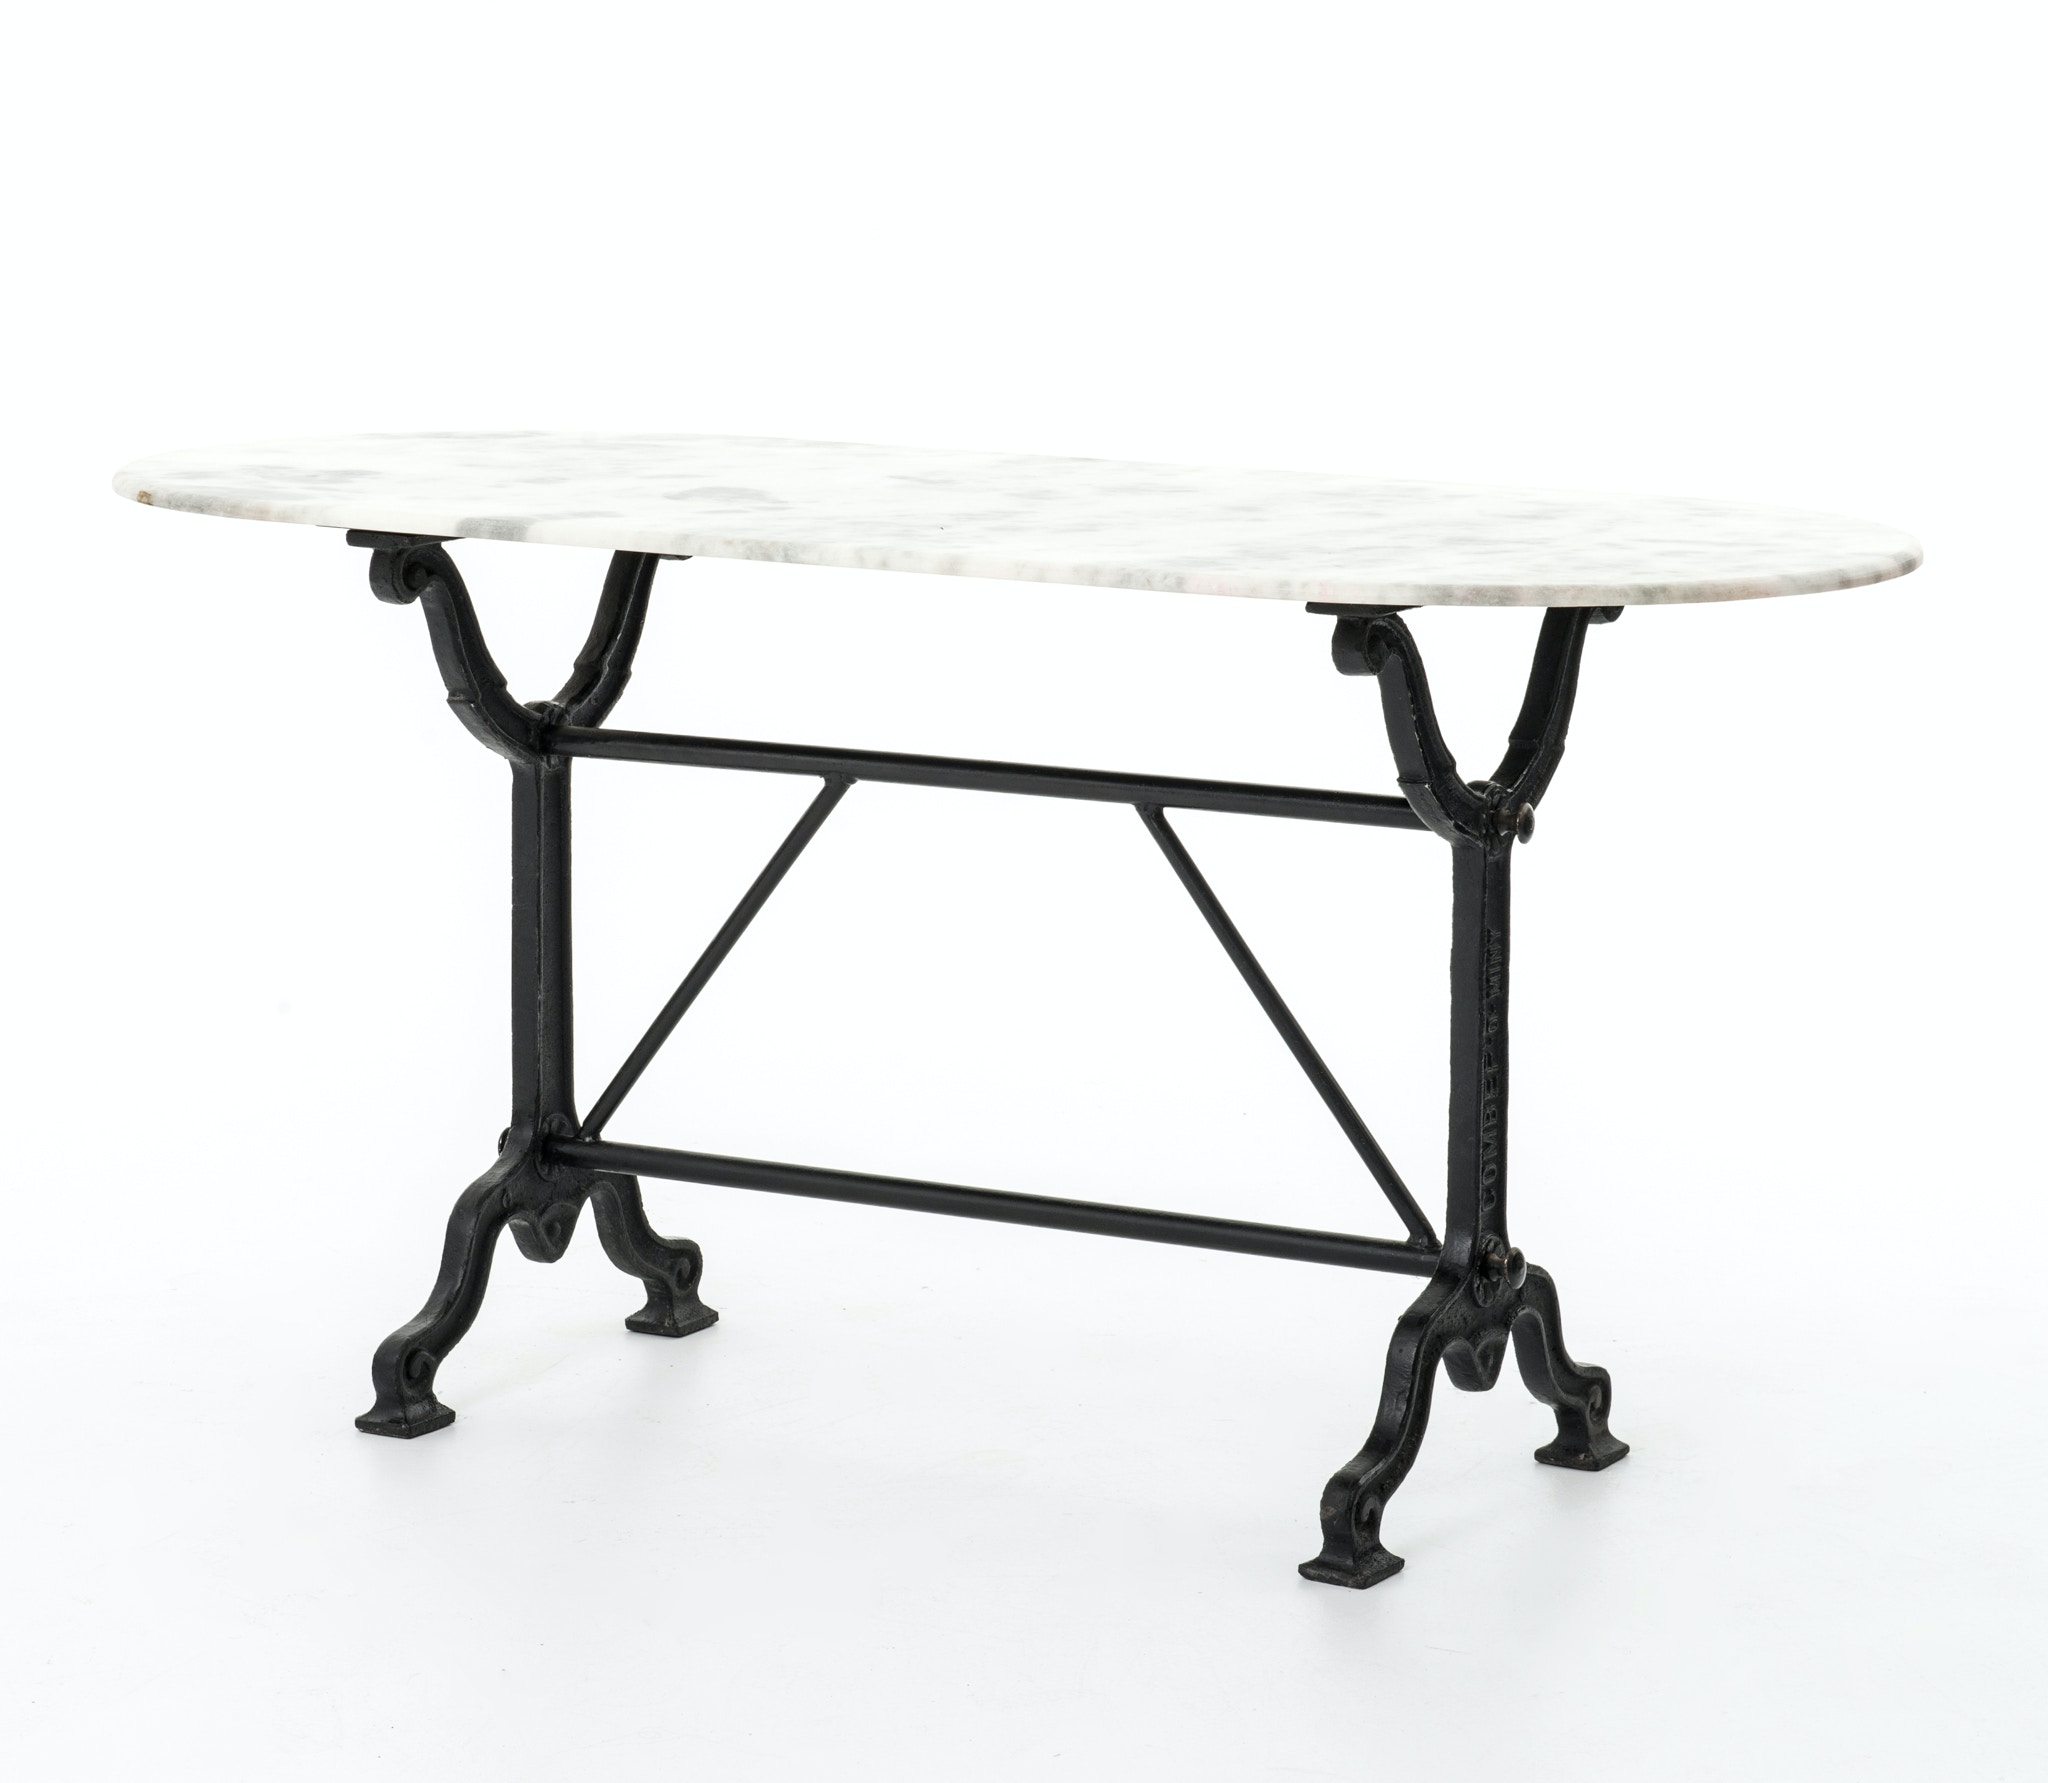 Four Hands Furniture IRCK 056 Home fice AVA WRITING TABLE